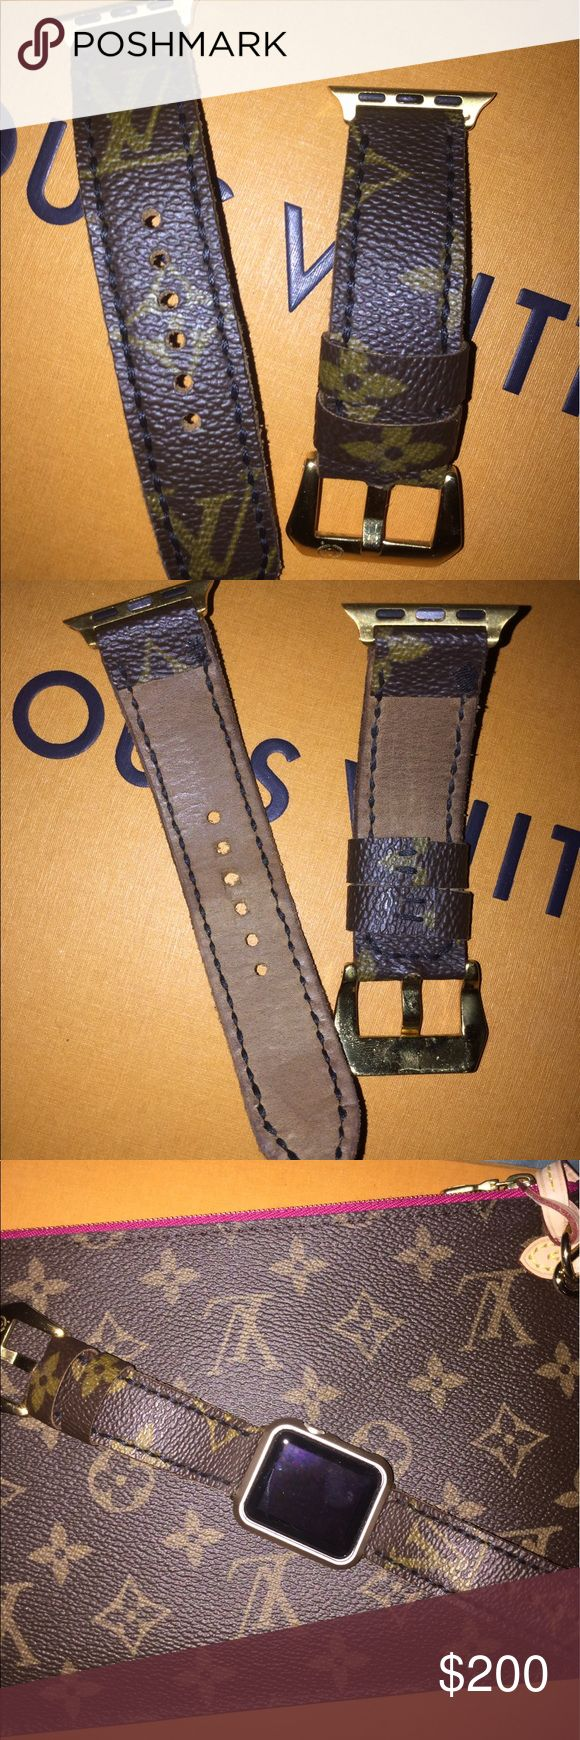 Authentic Louis Vuitton Apple Watch Band 38 It's really leather band for Apple Watch 38 Made from a recycled bag from Louis Vuitton!!! Used like New Louis Vuitton Accessories Watches